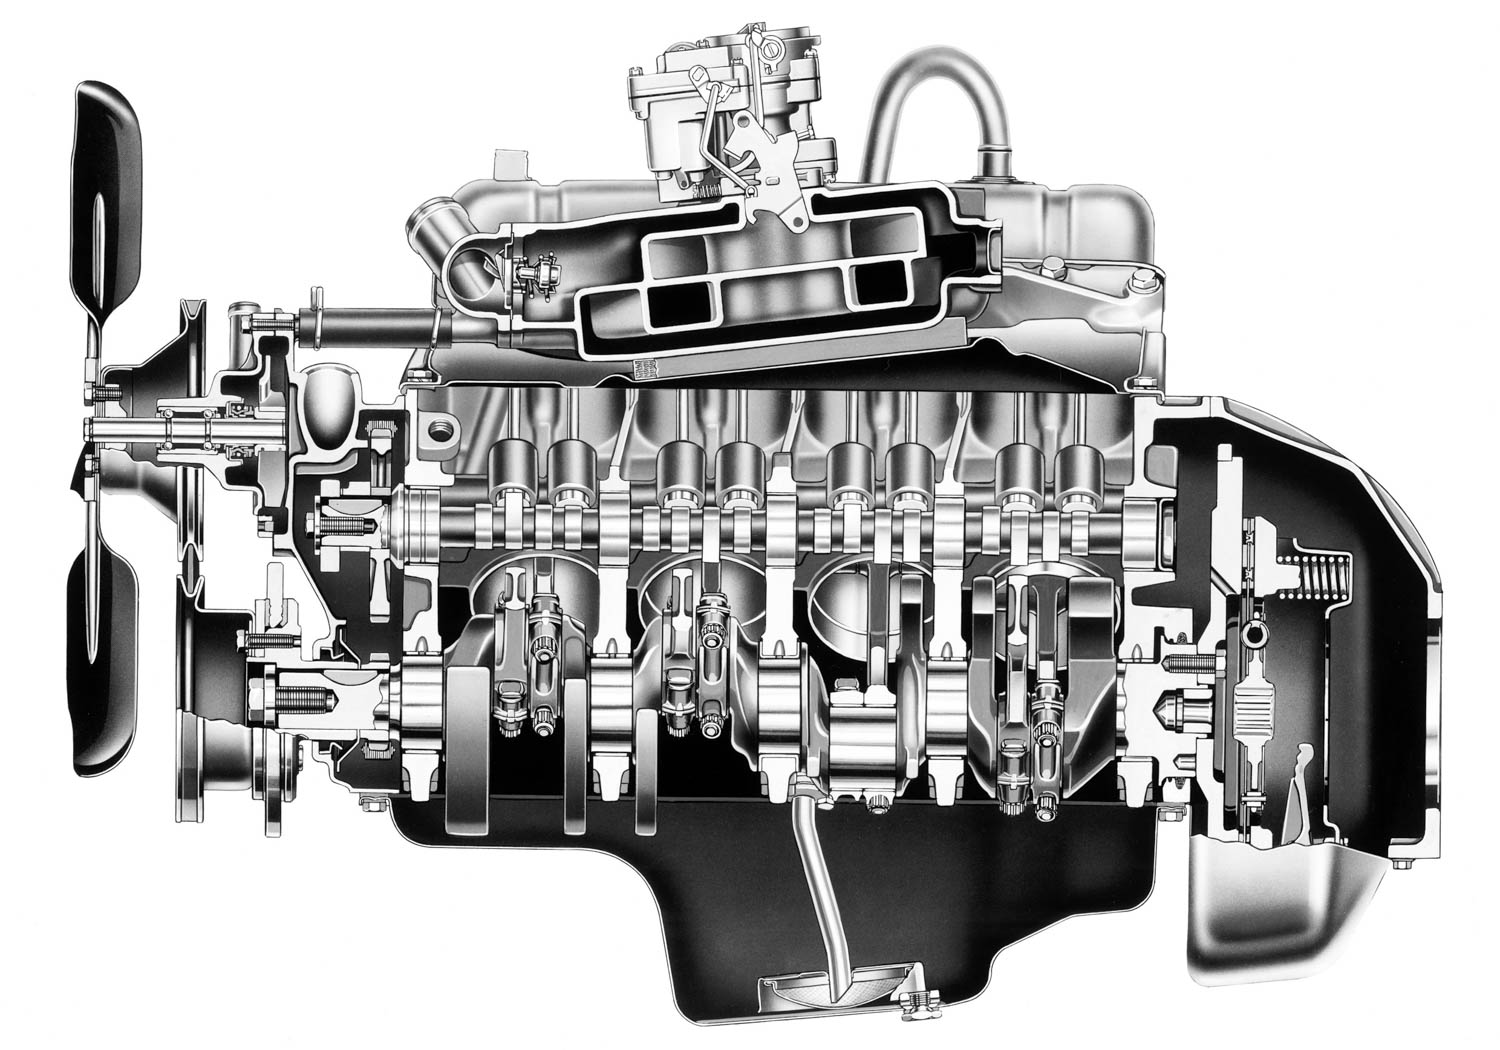 Buick's innovative V-8 featured a deep-skirt aluminum block containing an assortment of iron and steel parts: cast-in bore liners, forged connecting rods, and a crankshaft supported by five main-bearing caps. The result: an engine that weighed 324 pounds, 200 fewer than Chevy's small-block V-8.